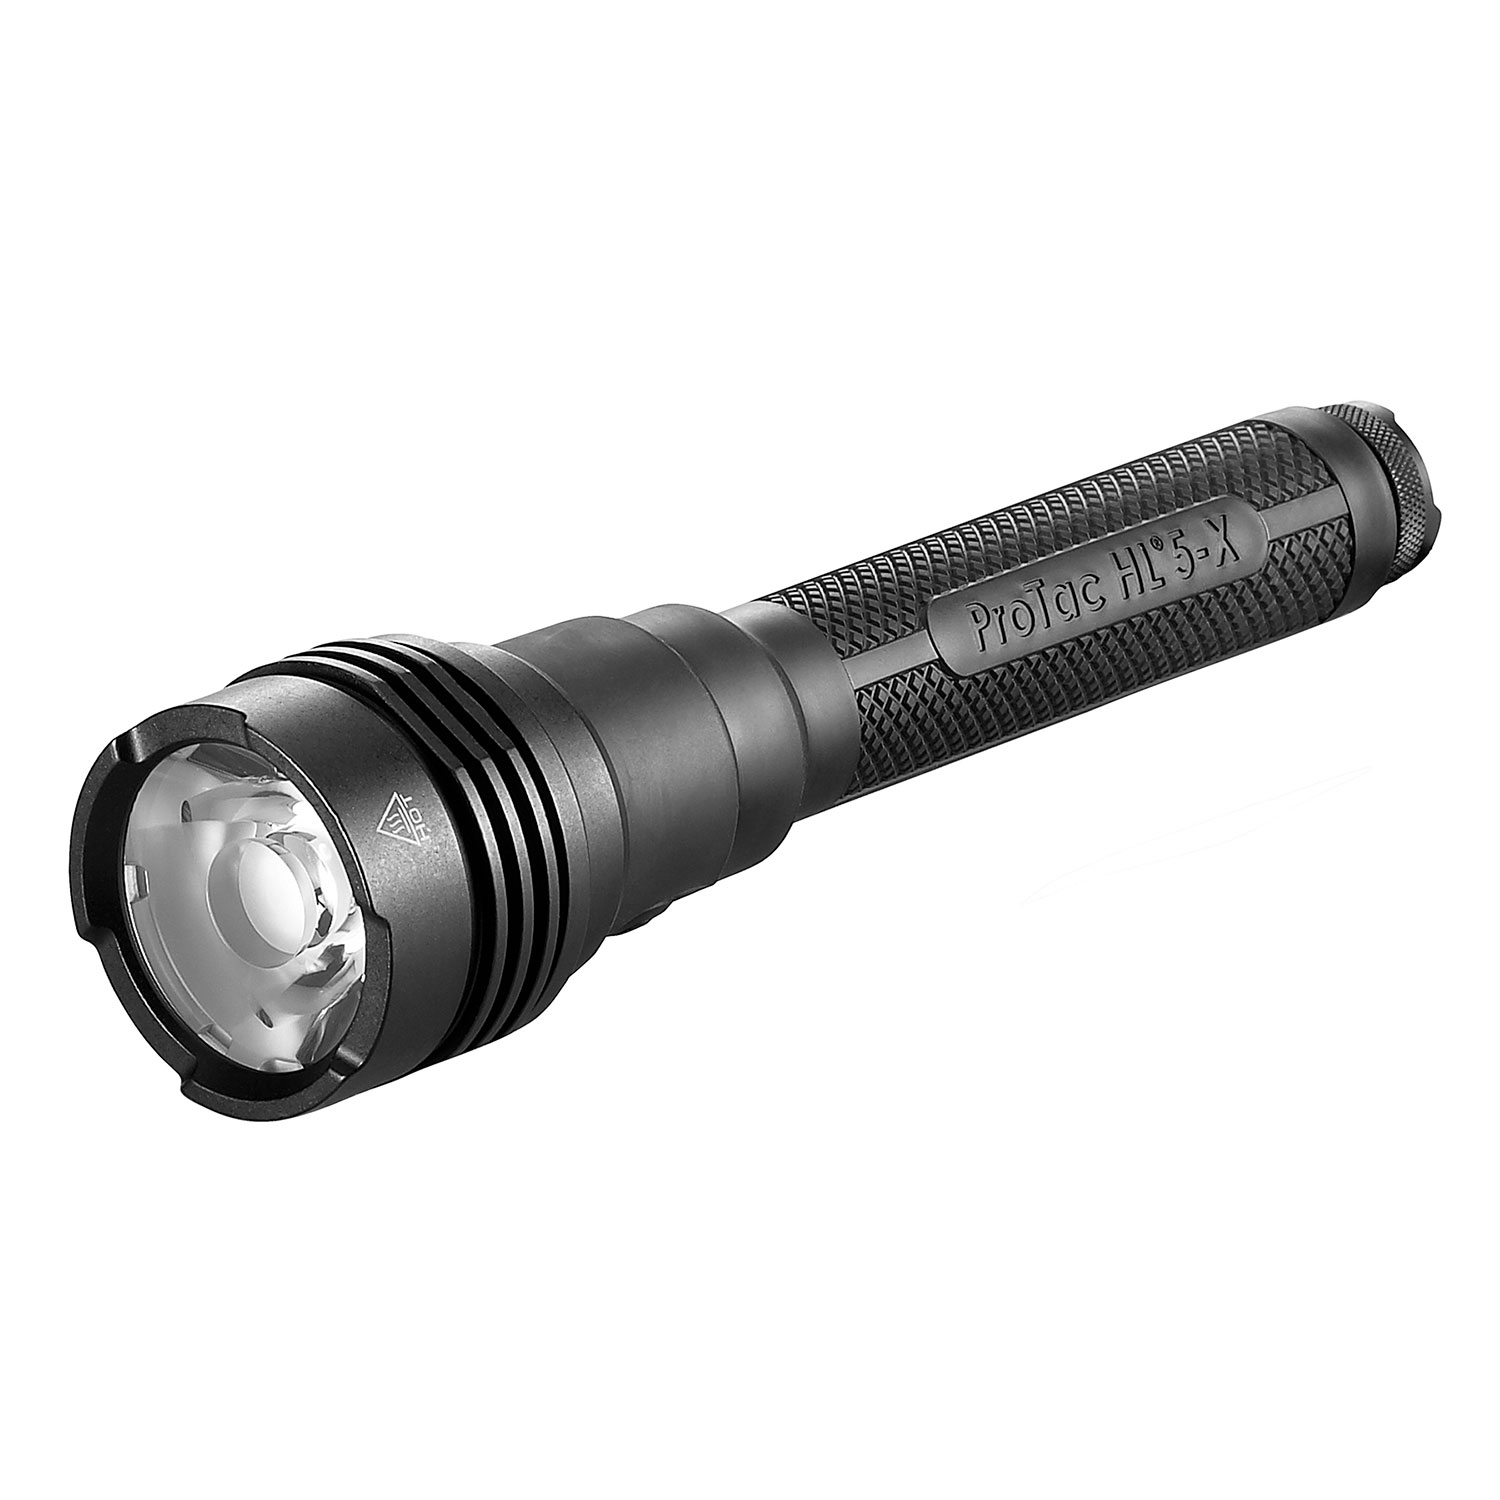 Streamlight ProTac HL 5-X Light with USB Charging Batteries